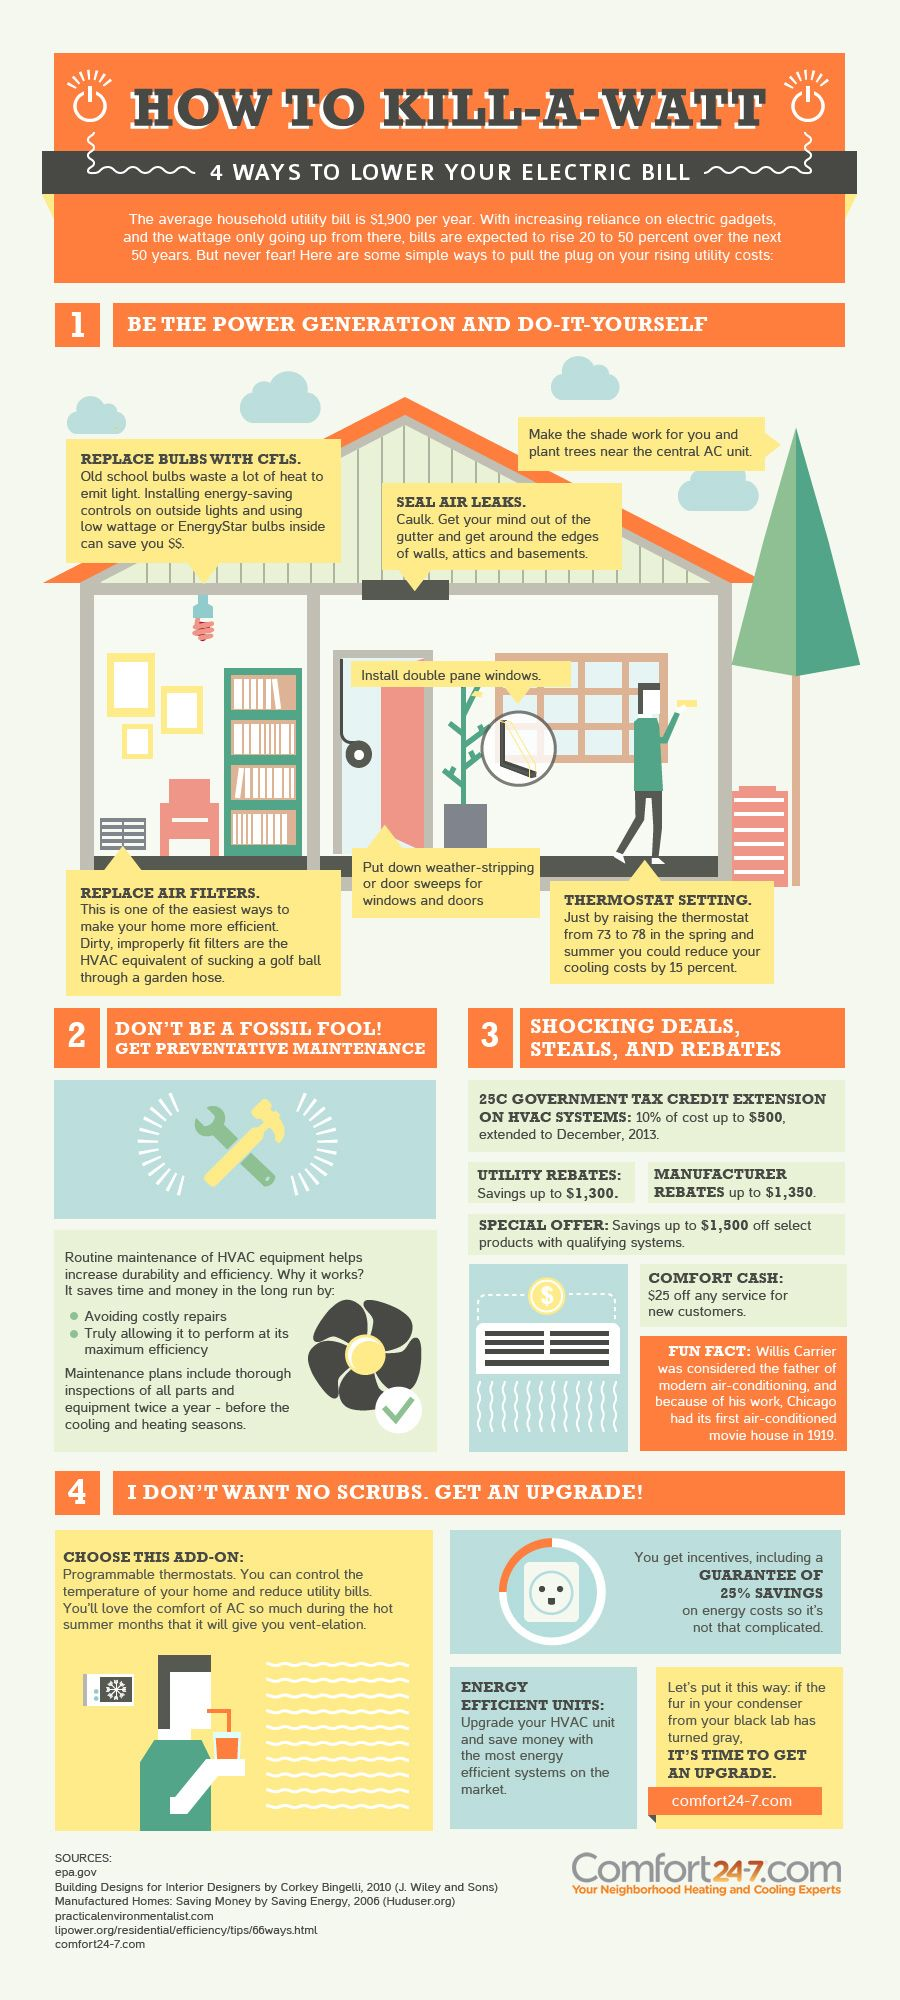 Infographic how to kill a watt tips to lower your electric bill infographic how to kill a watt tips to lower your electric bill solutioingenieria Images